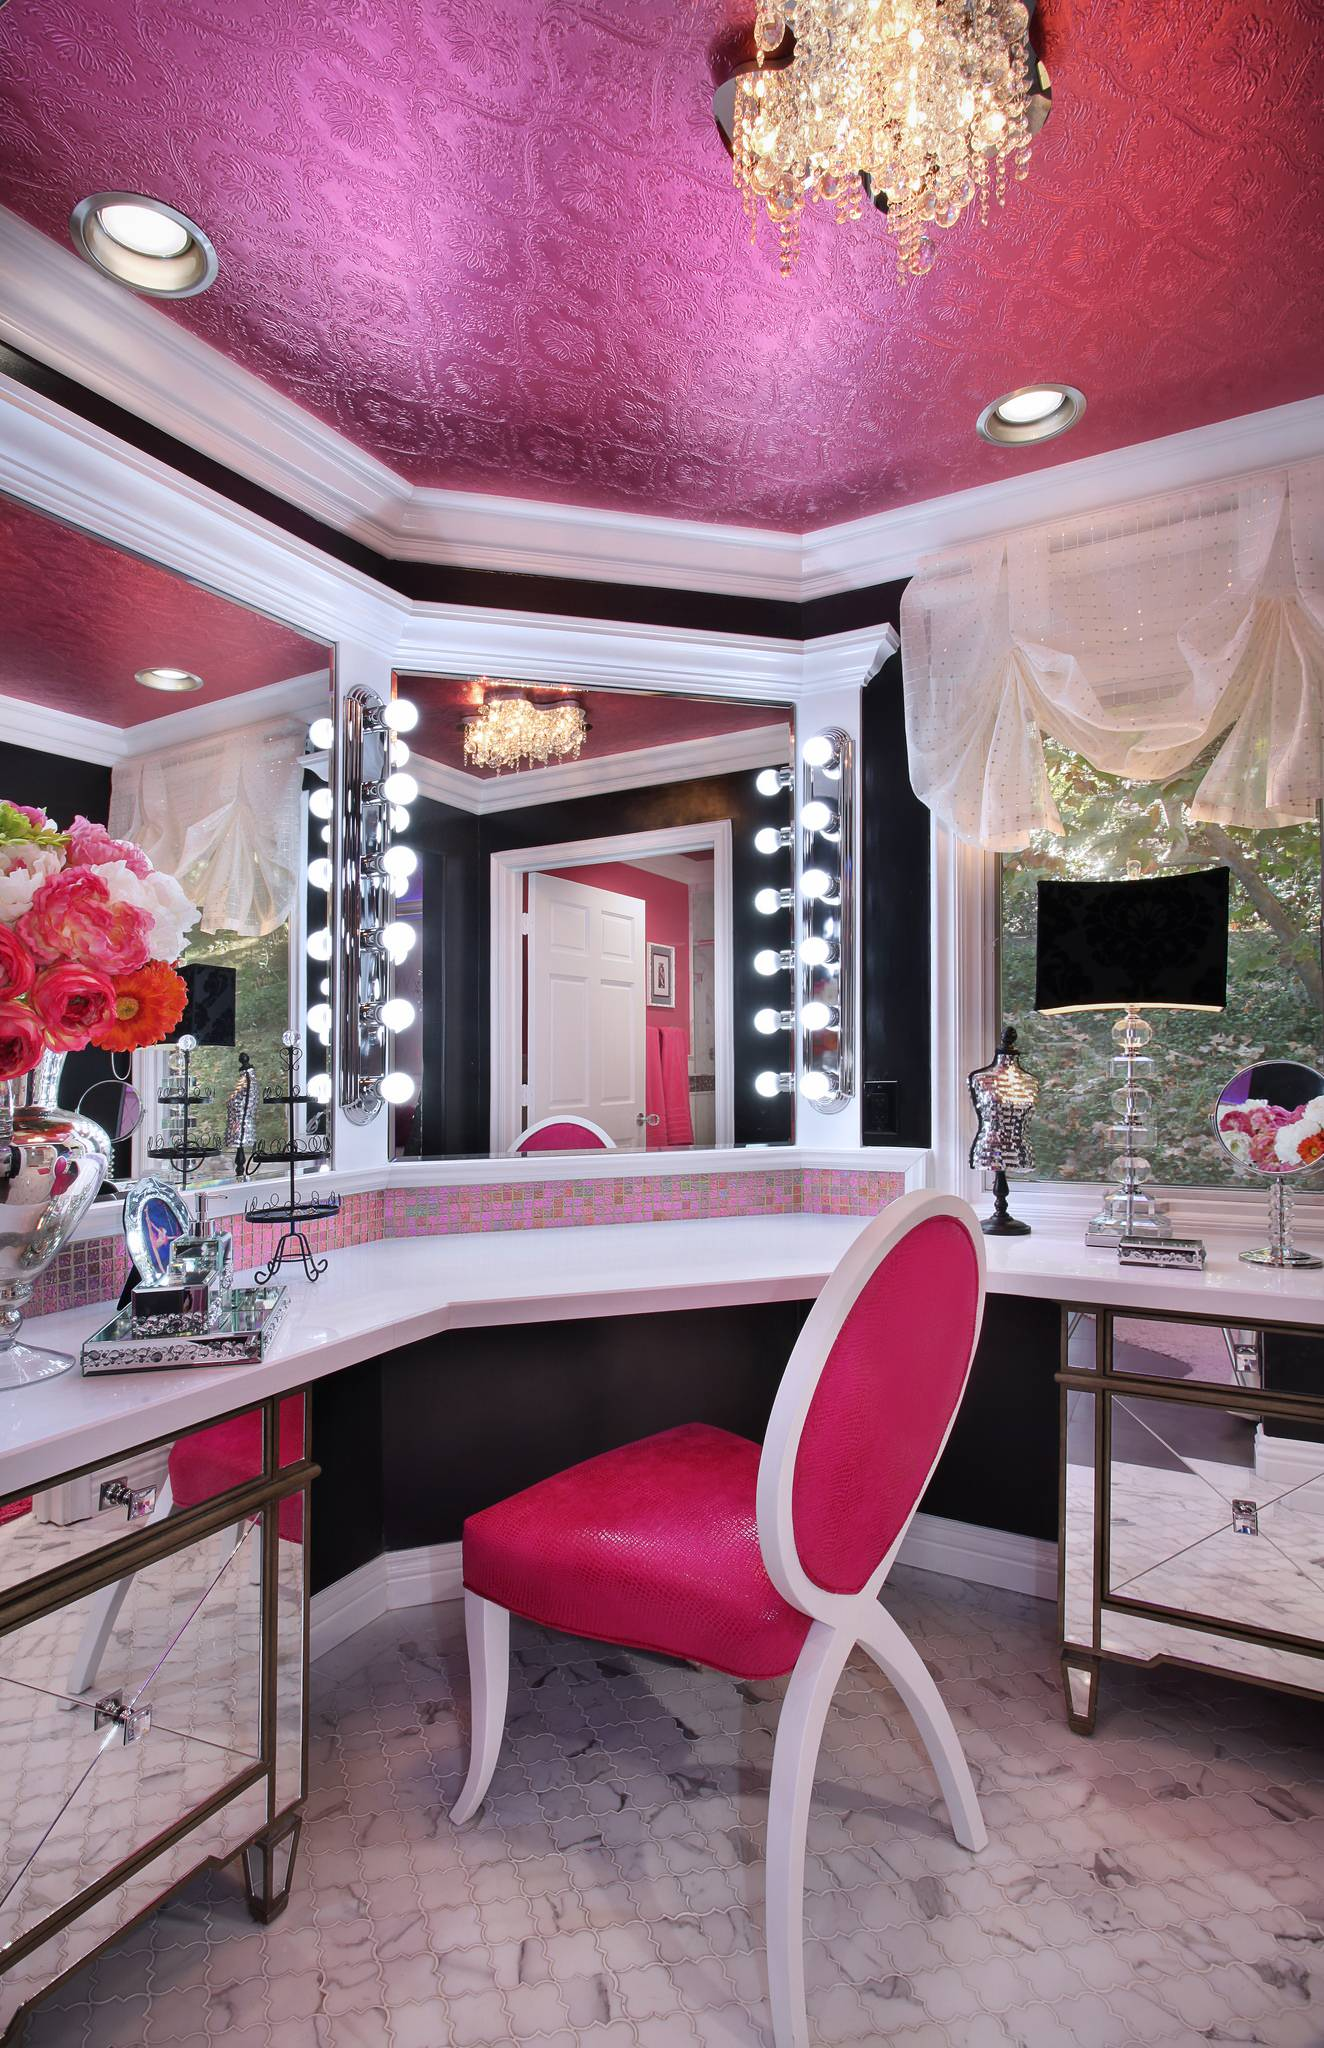 kylie jenner style glam room home decor ideas